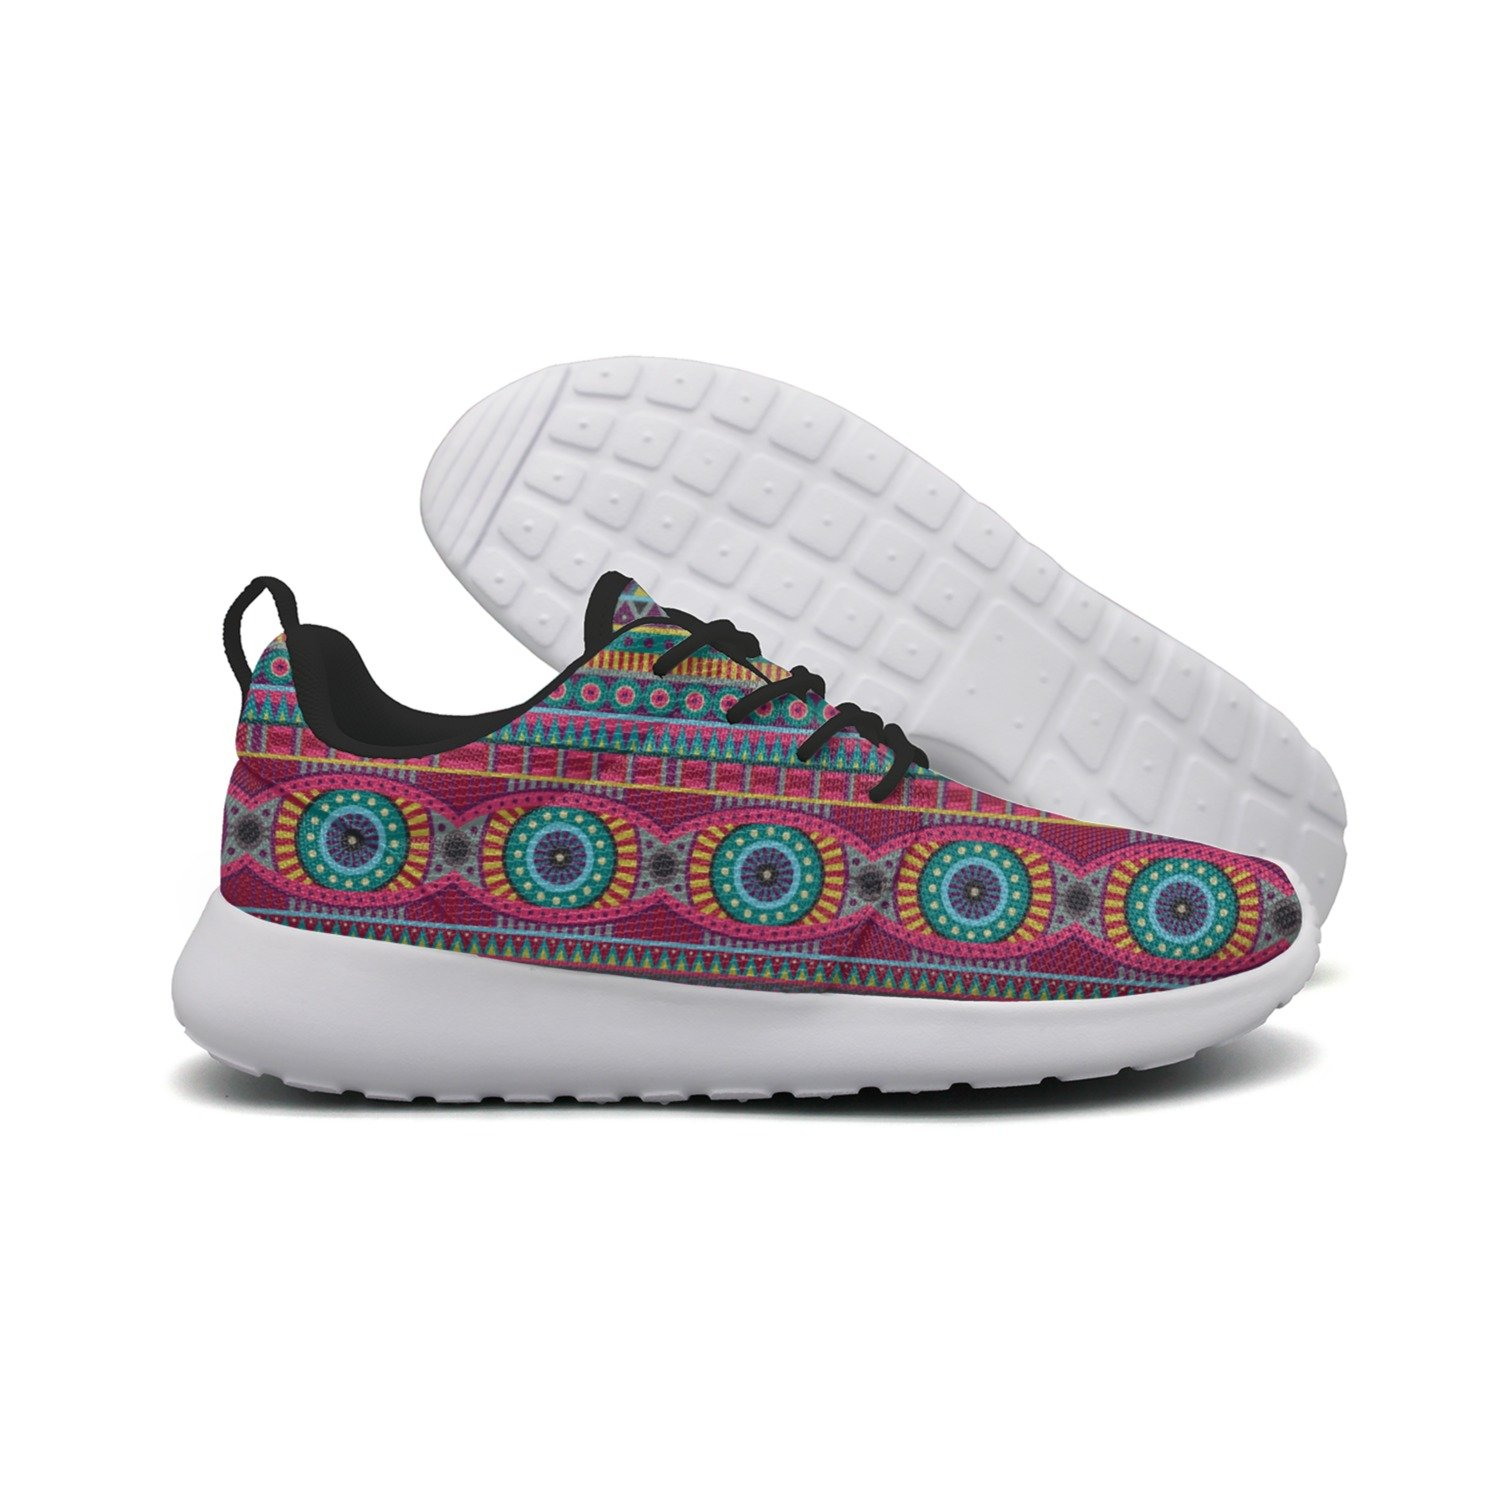 FUFGT Flower Pattern Of African Women Camping Design Running Shoes Navy Colorful